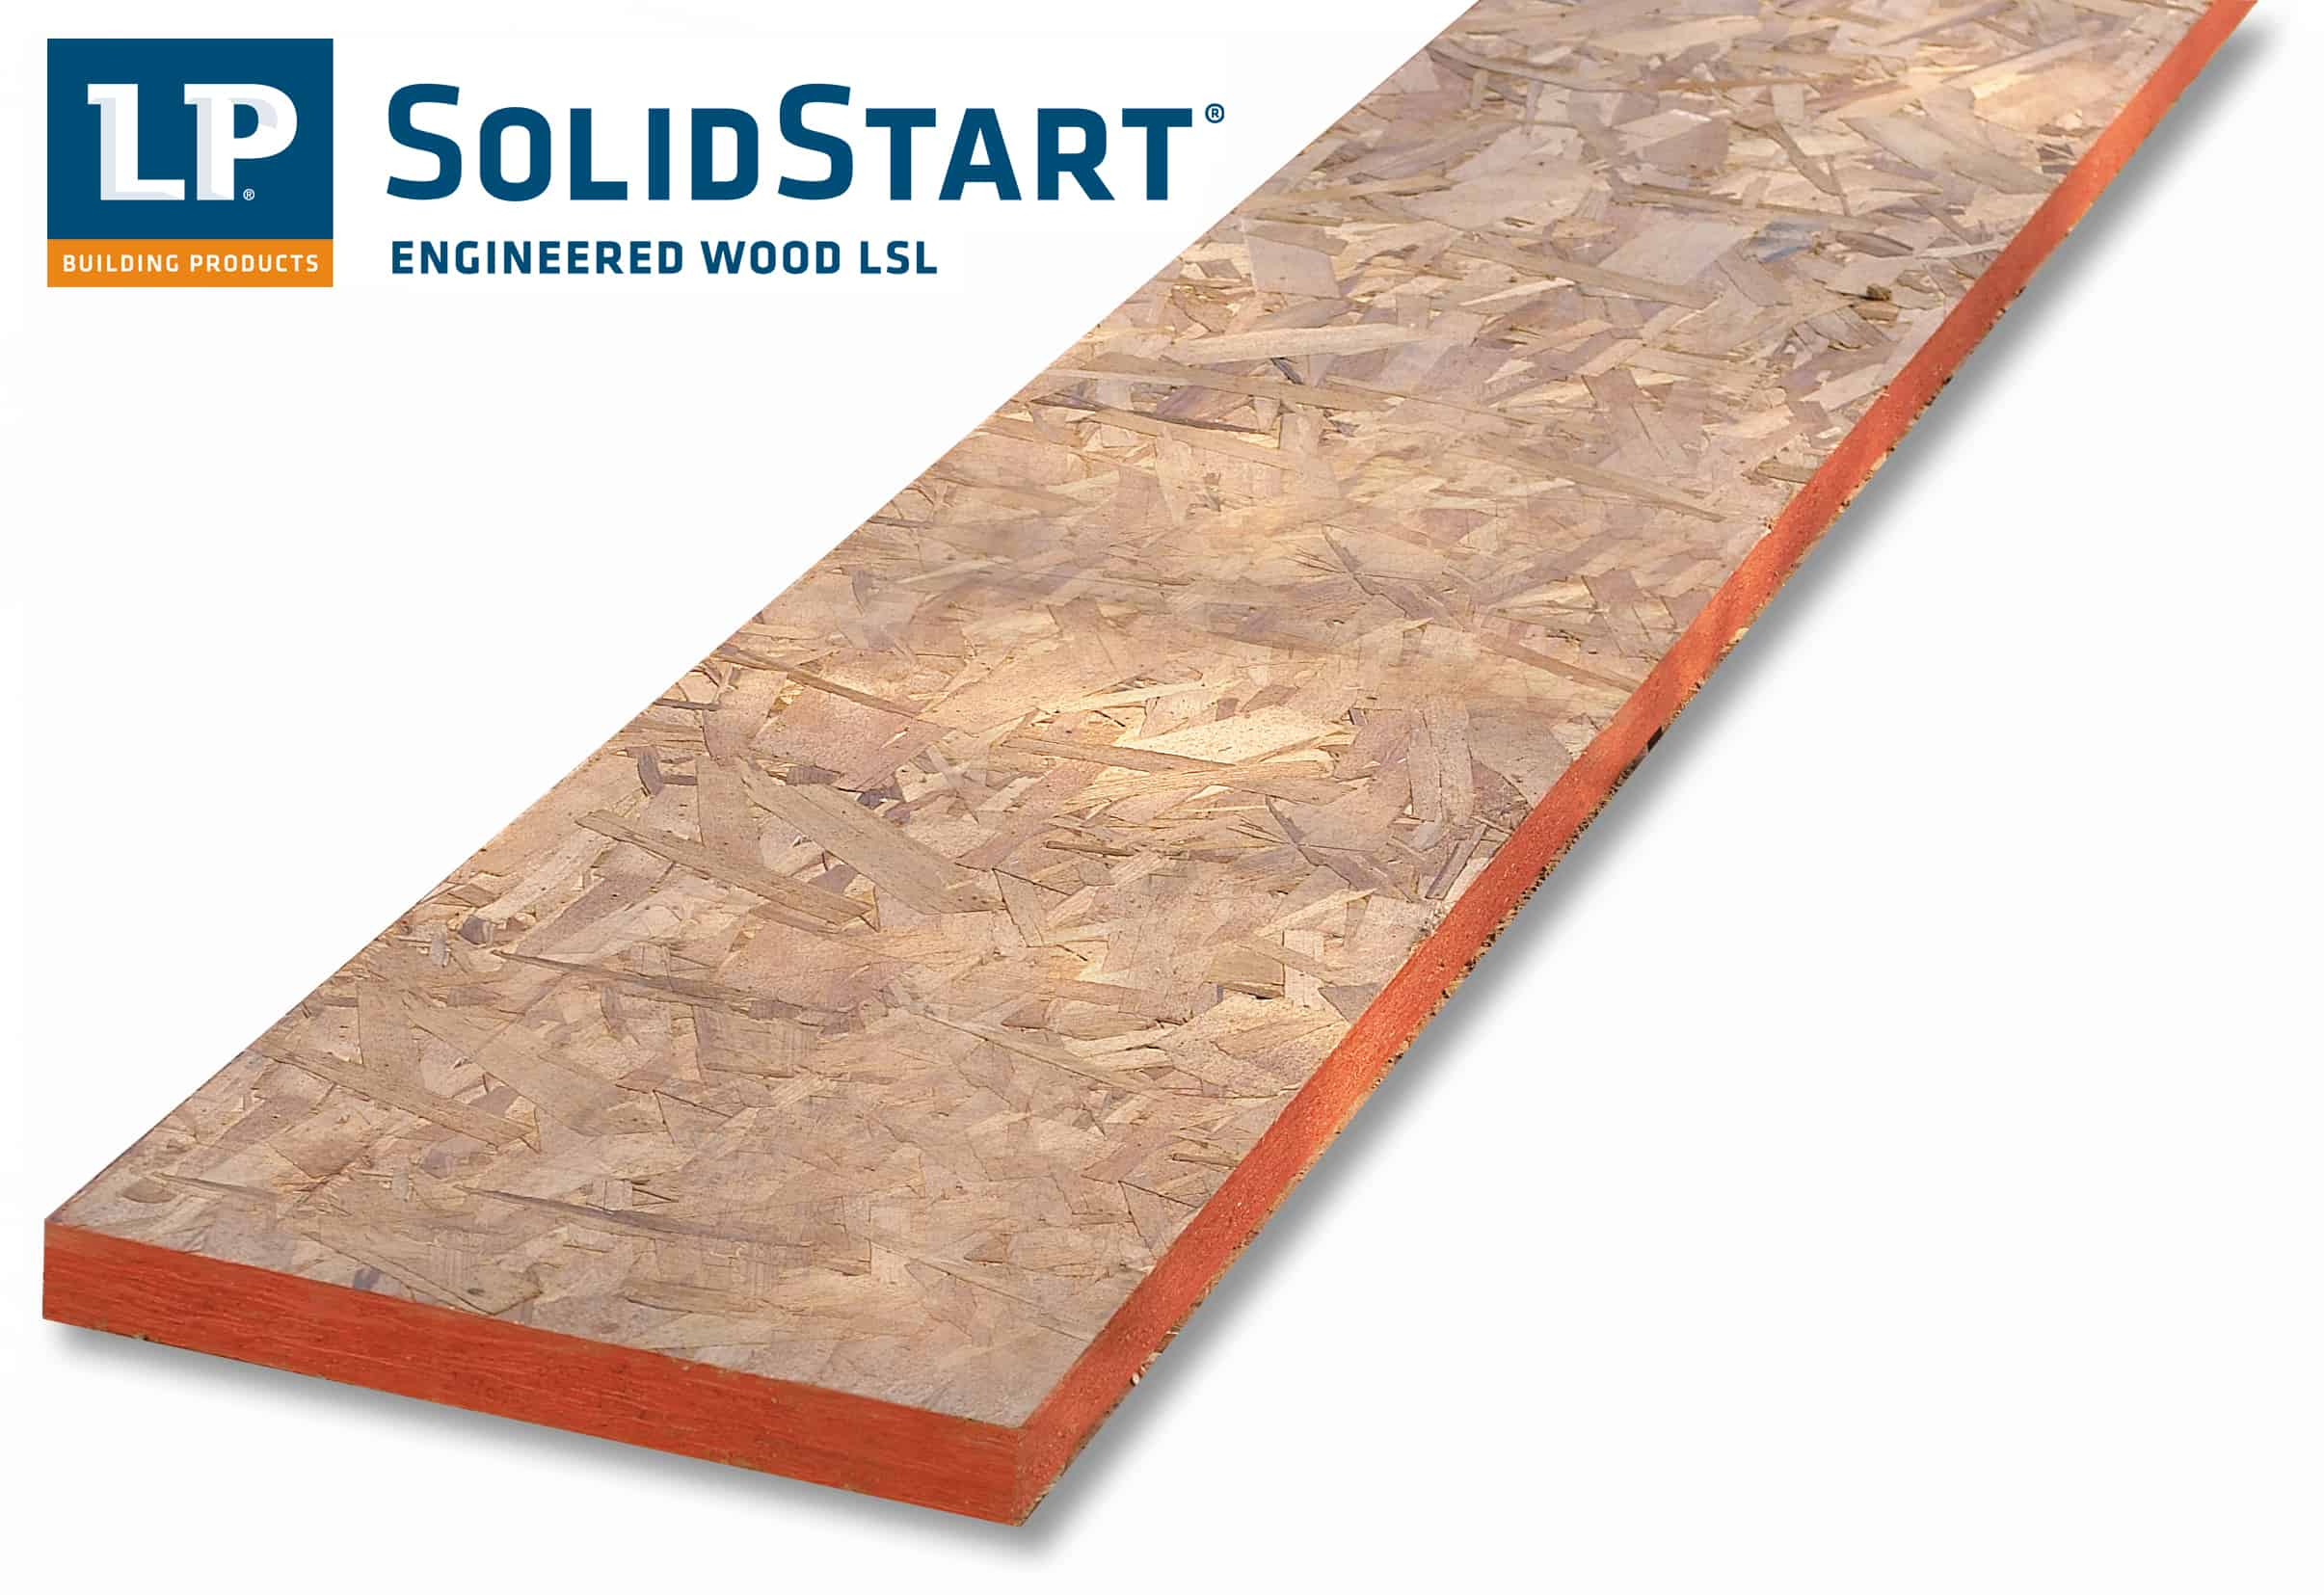 Sprenger midwest wholesale lumber lp solidstart rim board for Lp engineered wood